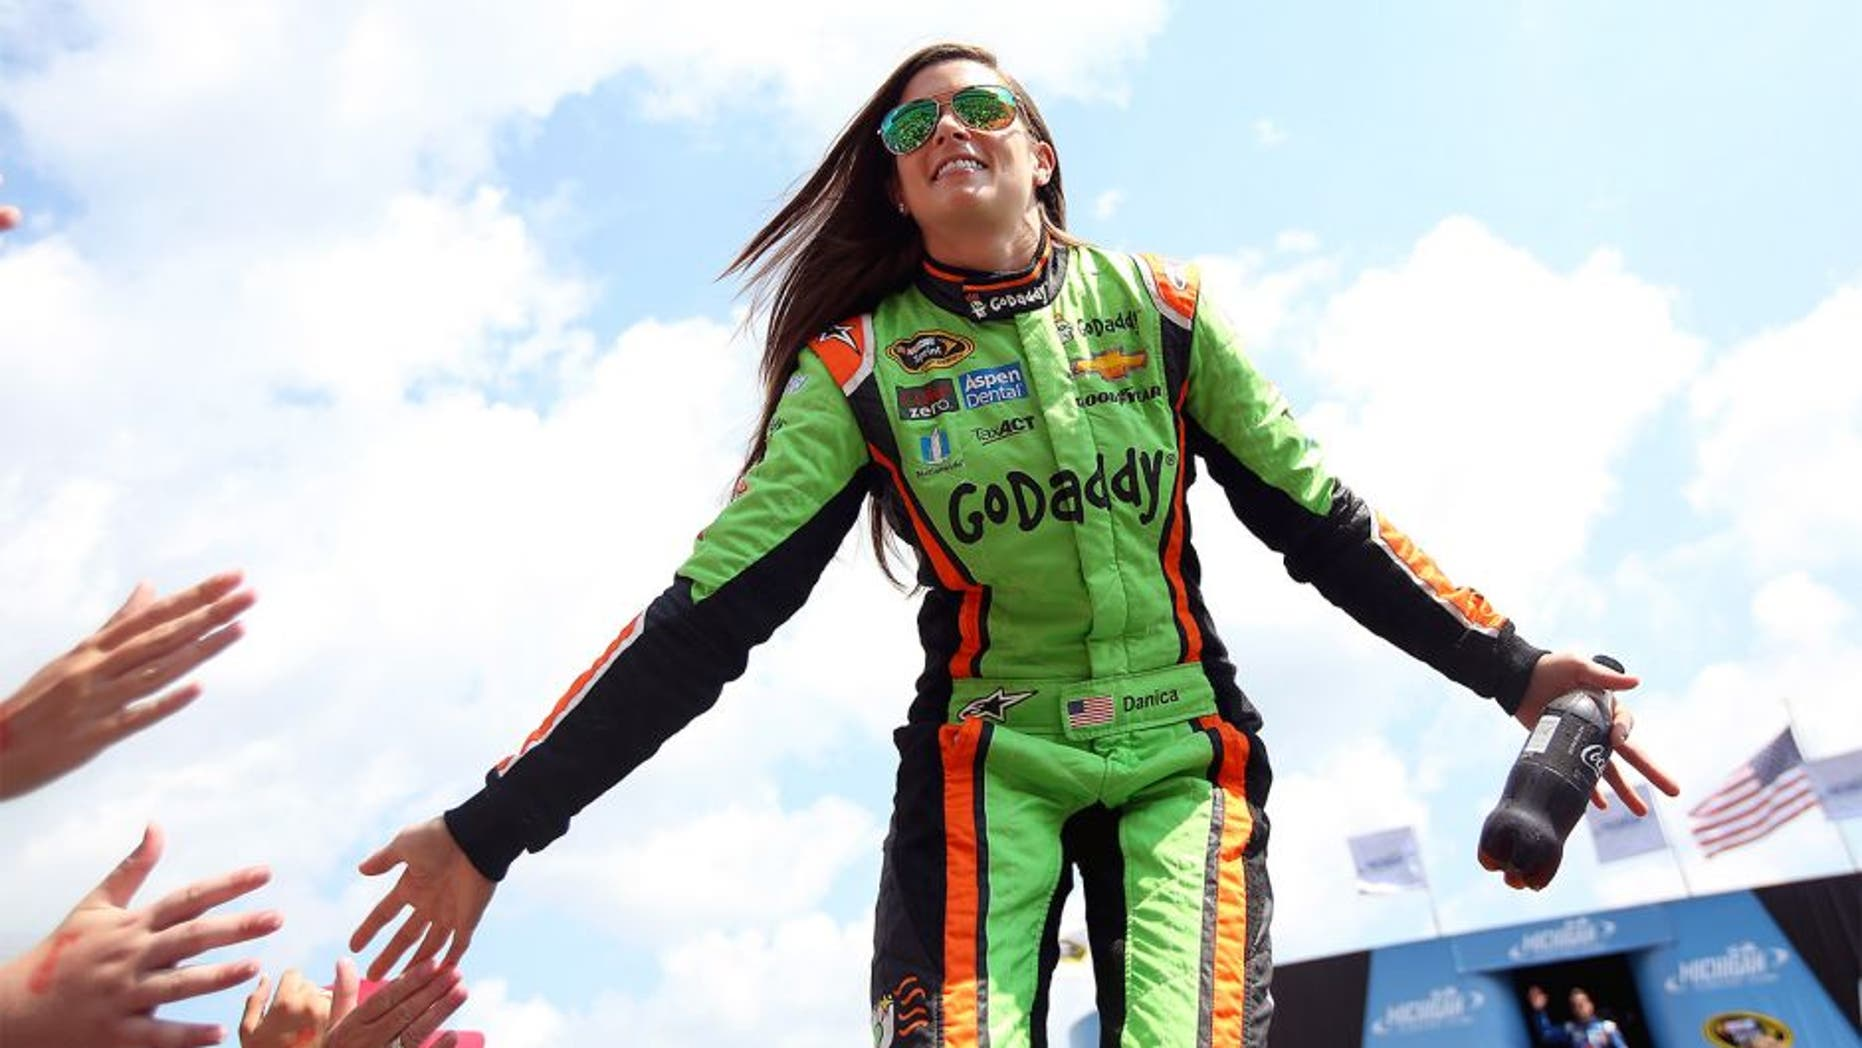 BROOKLYN, MI - AUGUST 16: Danica Patrick, driver of the #10 GoDaddy Chevrolet, is introduced during pre-race ceremonies before the NASCAR Sprint Cup Series Pure Michigan 400 at Michigan International Speedway on August 16, 2015 in Brooklyn, Michigan. (Photo by Nick Laham/NASCAR via Getty Images)